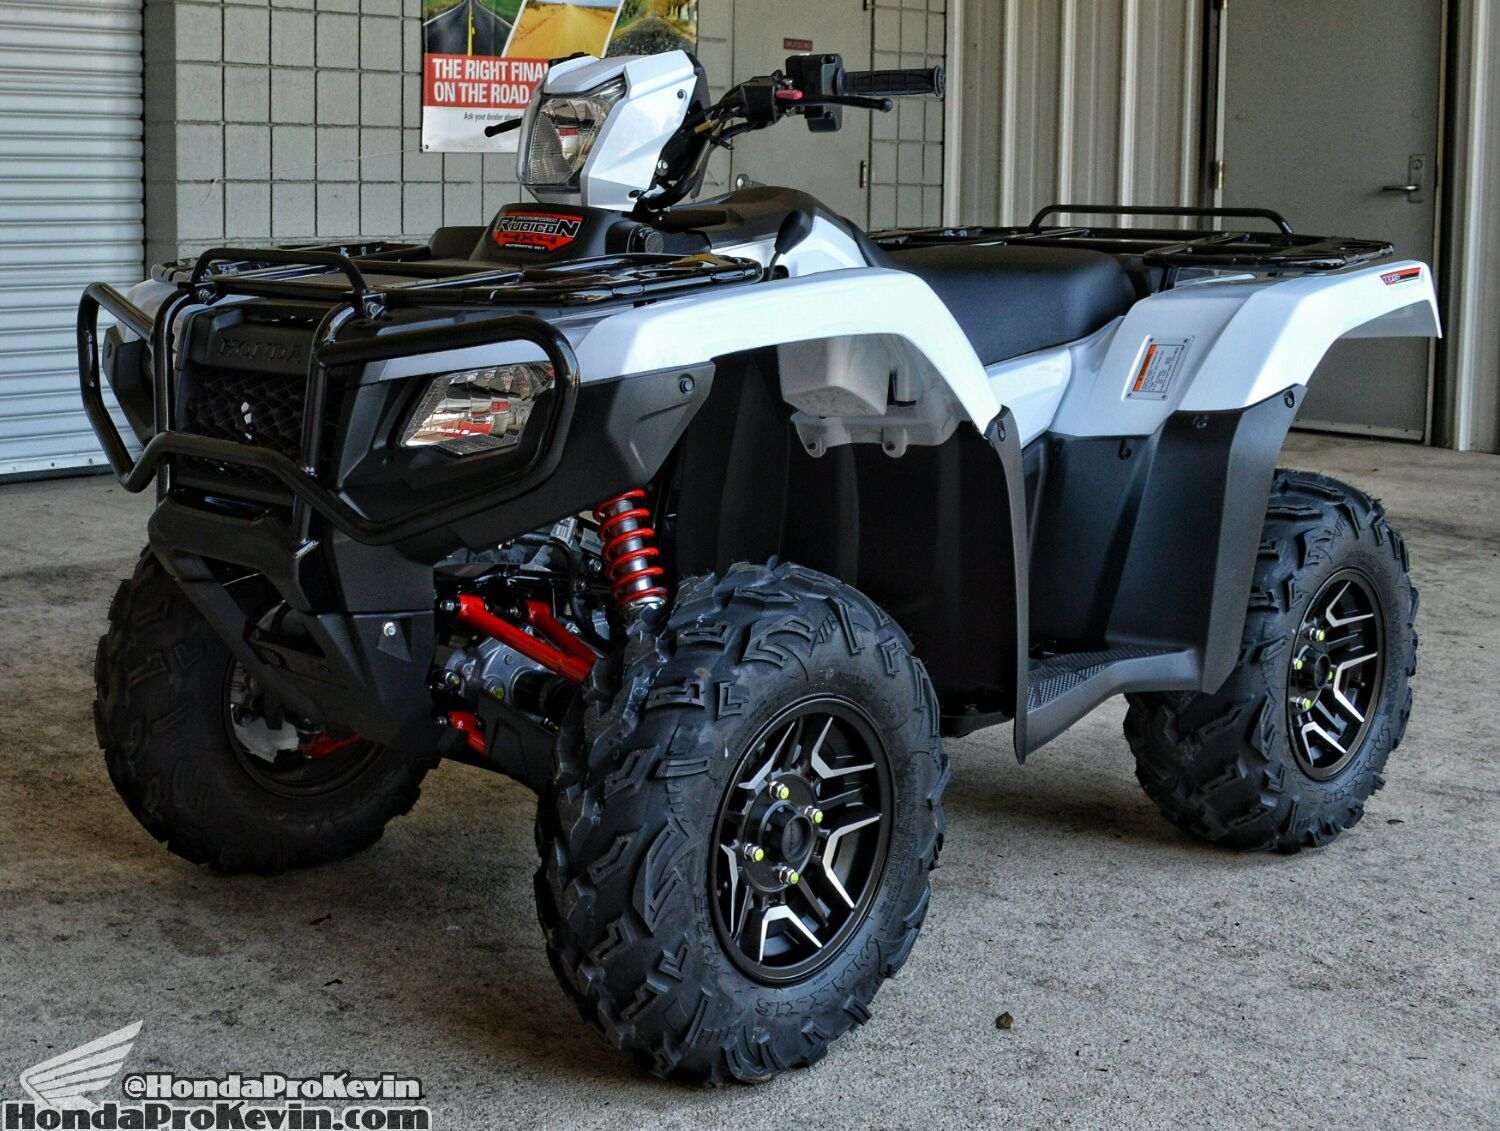 2016 Honda 500 Foreman Vs Rubicon Which Is Better Atv Comparison 2016 Honda Best Atv Honda